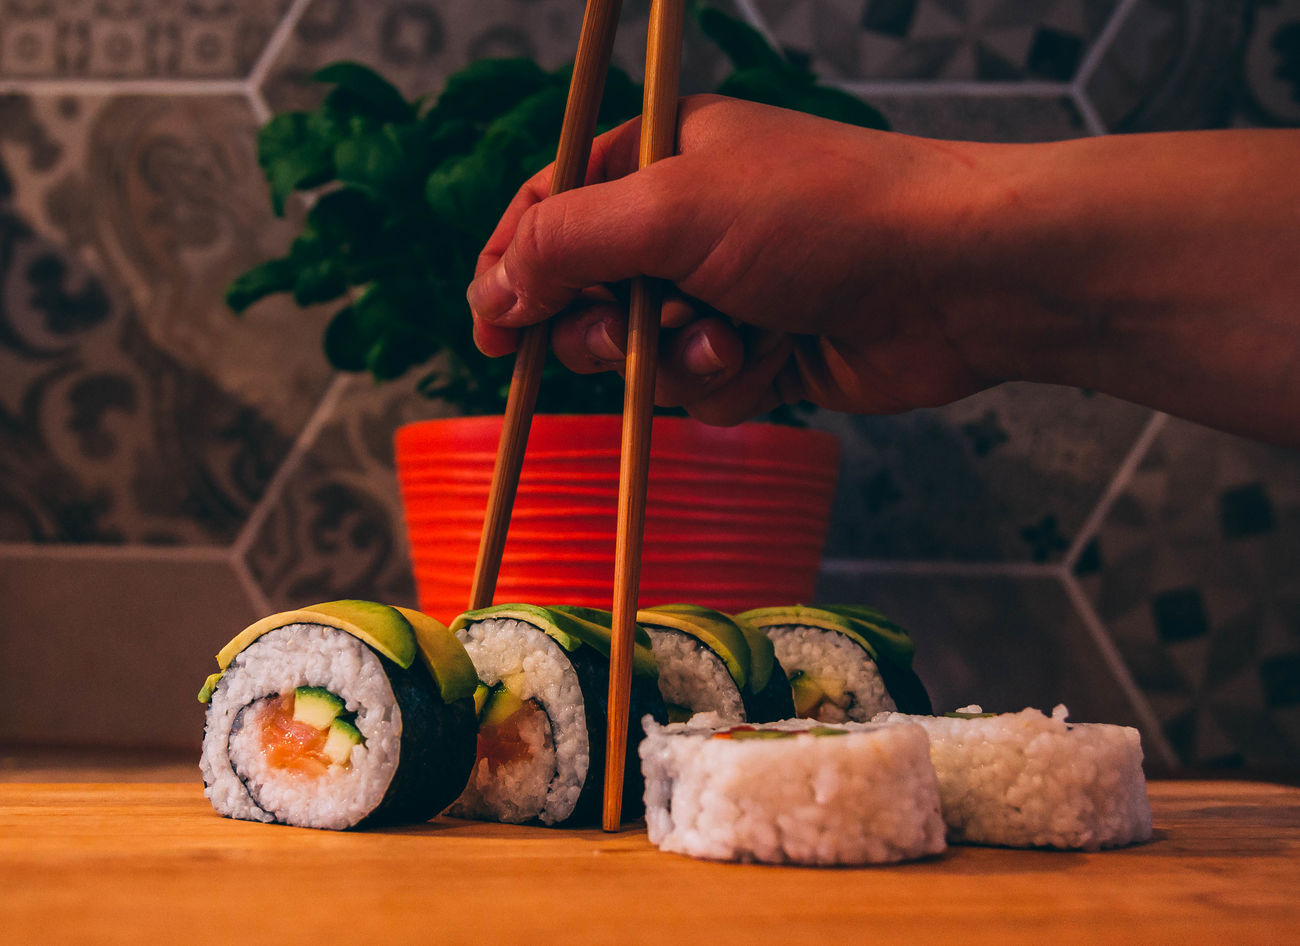 Sushi Adult Adults Only Close-up Day Food Food And Drink Freshness Healthy Lifestyle Human Body Part Human Hand Indoors  One Man Only One Person Only Men People Skewer Sushi Sushi Rolls Sushi Time Sushi! Sushilover Sushitime